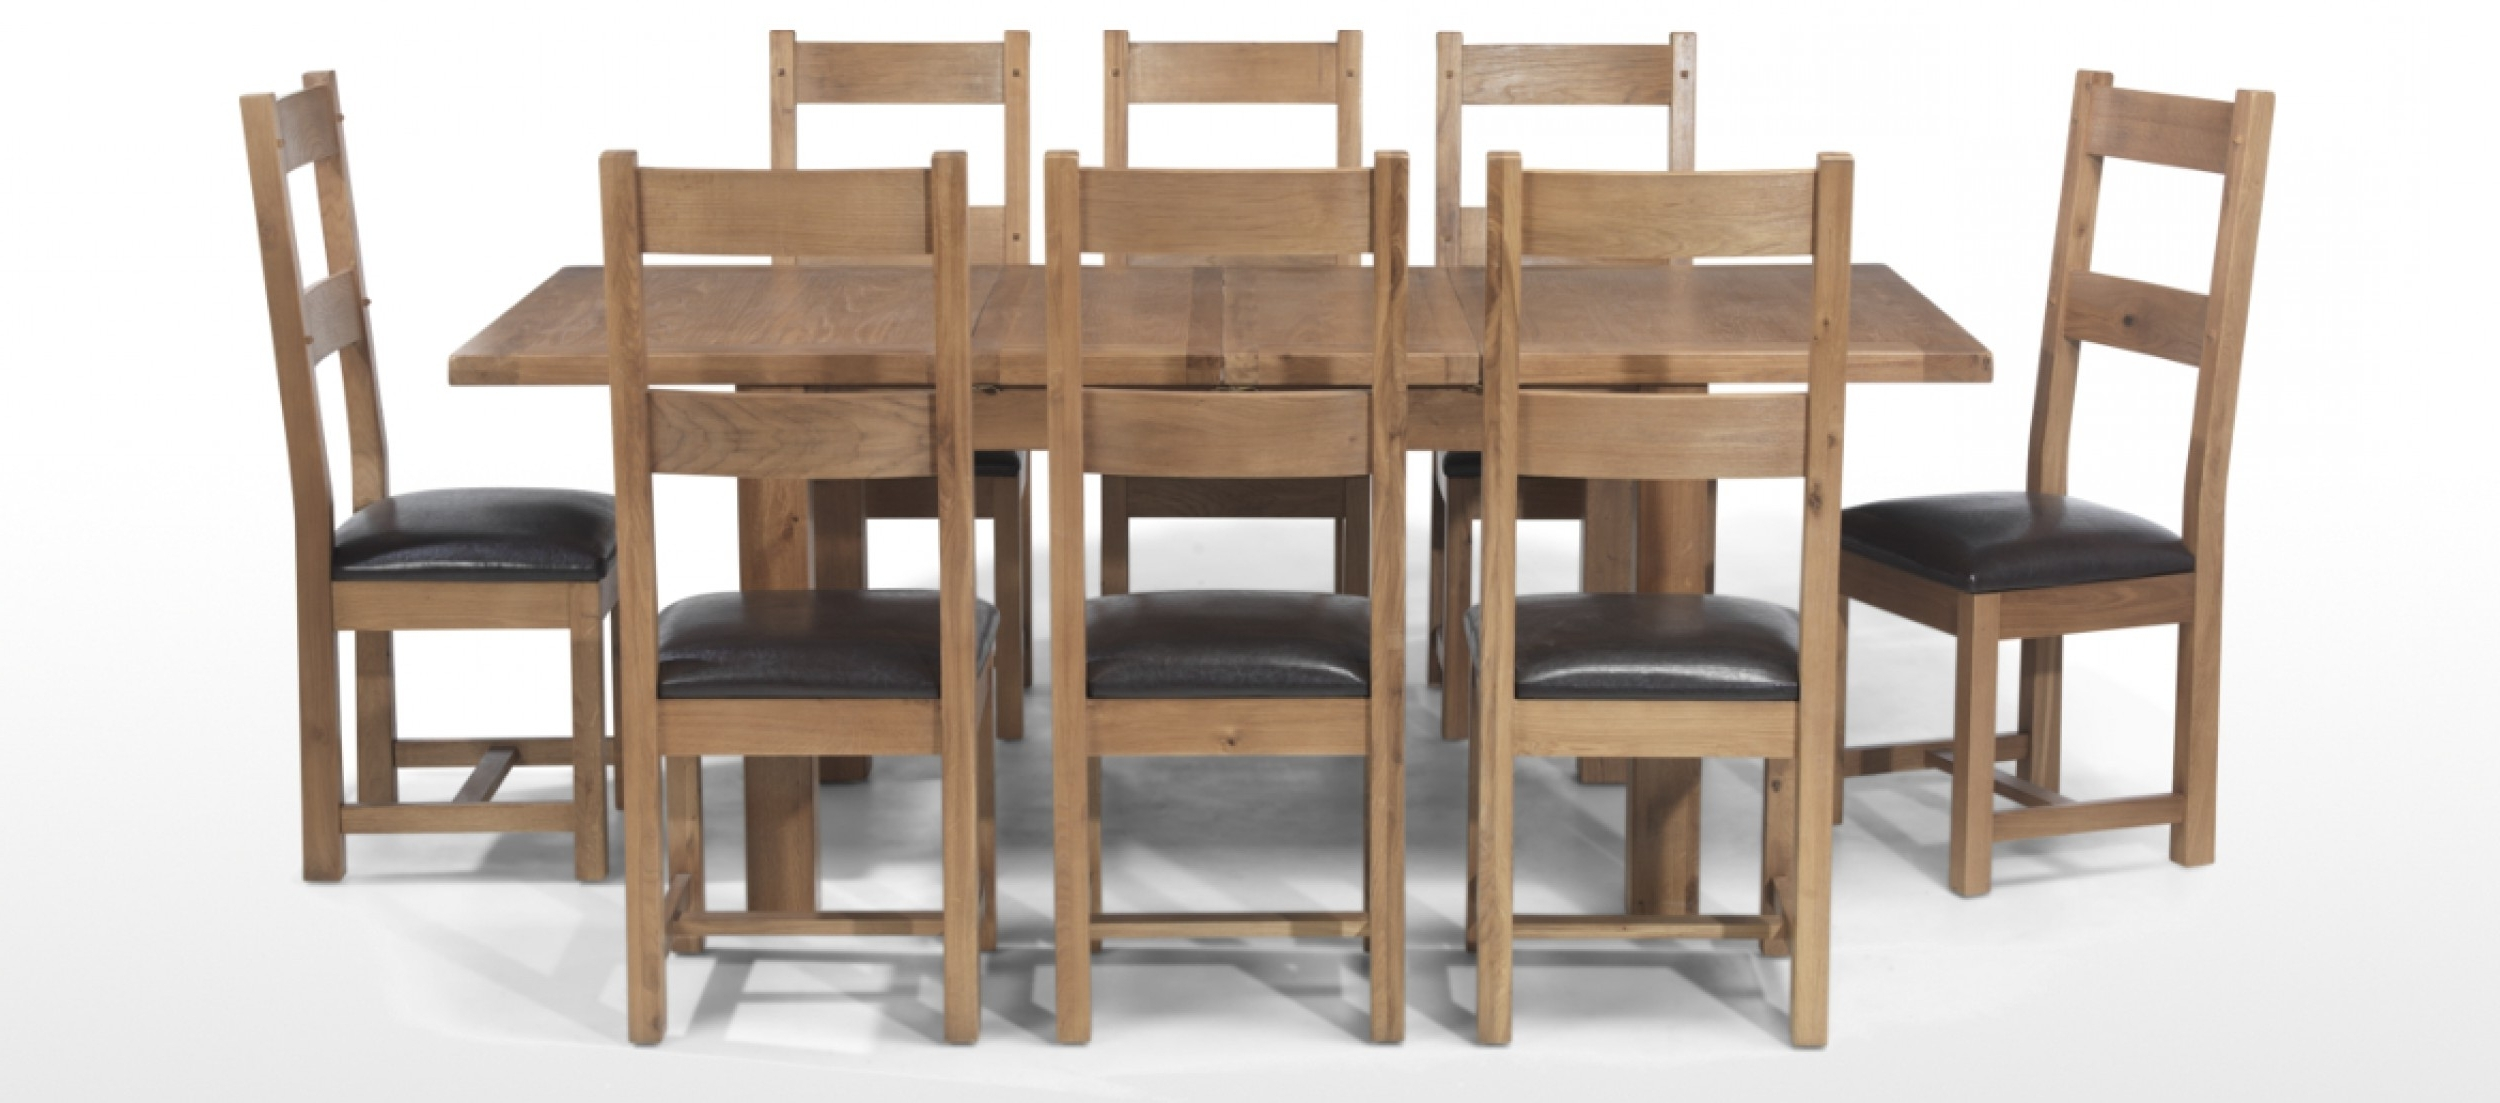 Quercus pertaining to Extendable Dining Tables With 8 Seats